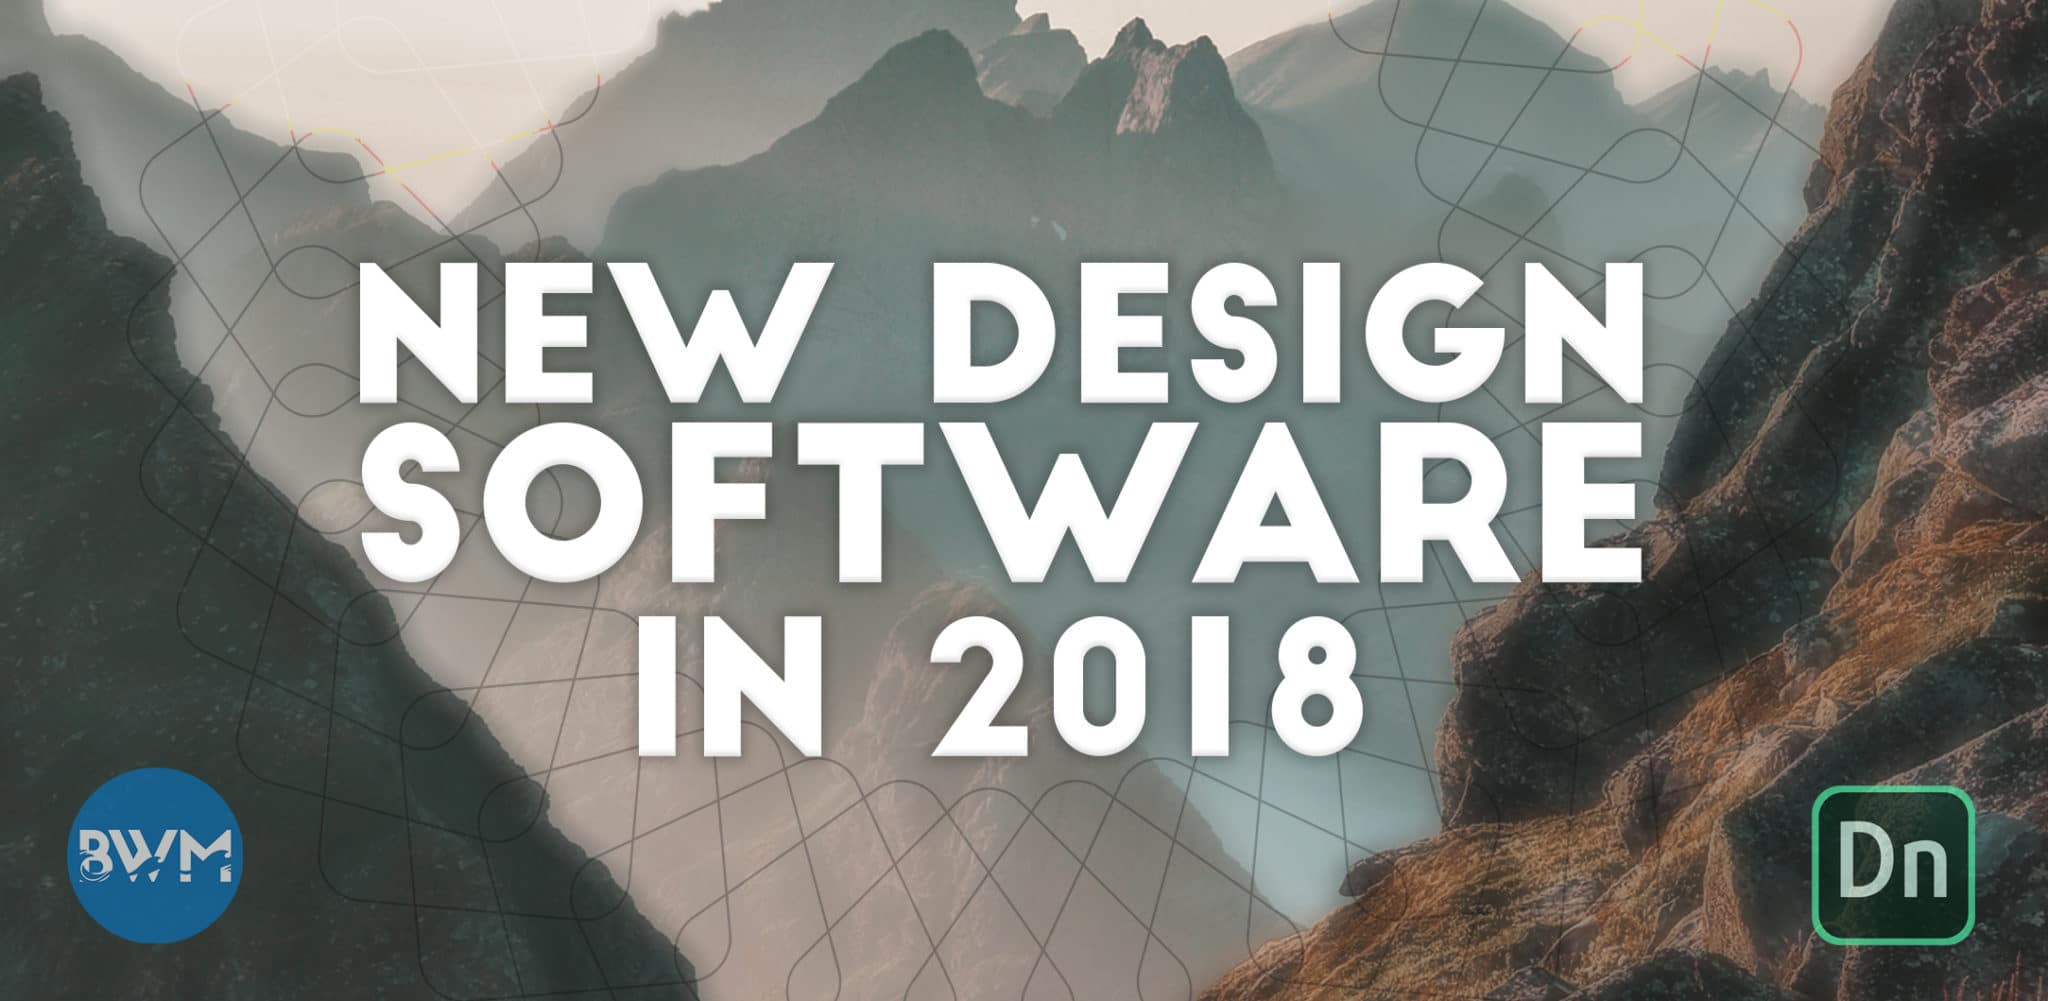 New Design Software In 2018 Blog Image